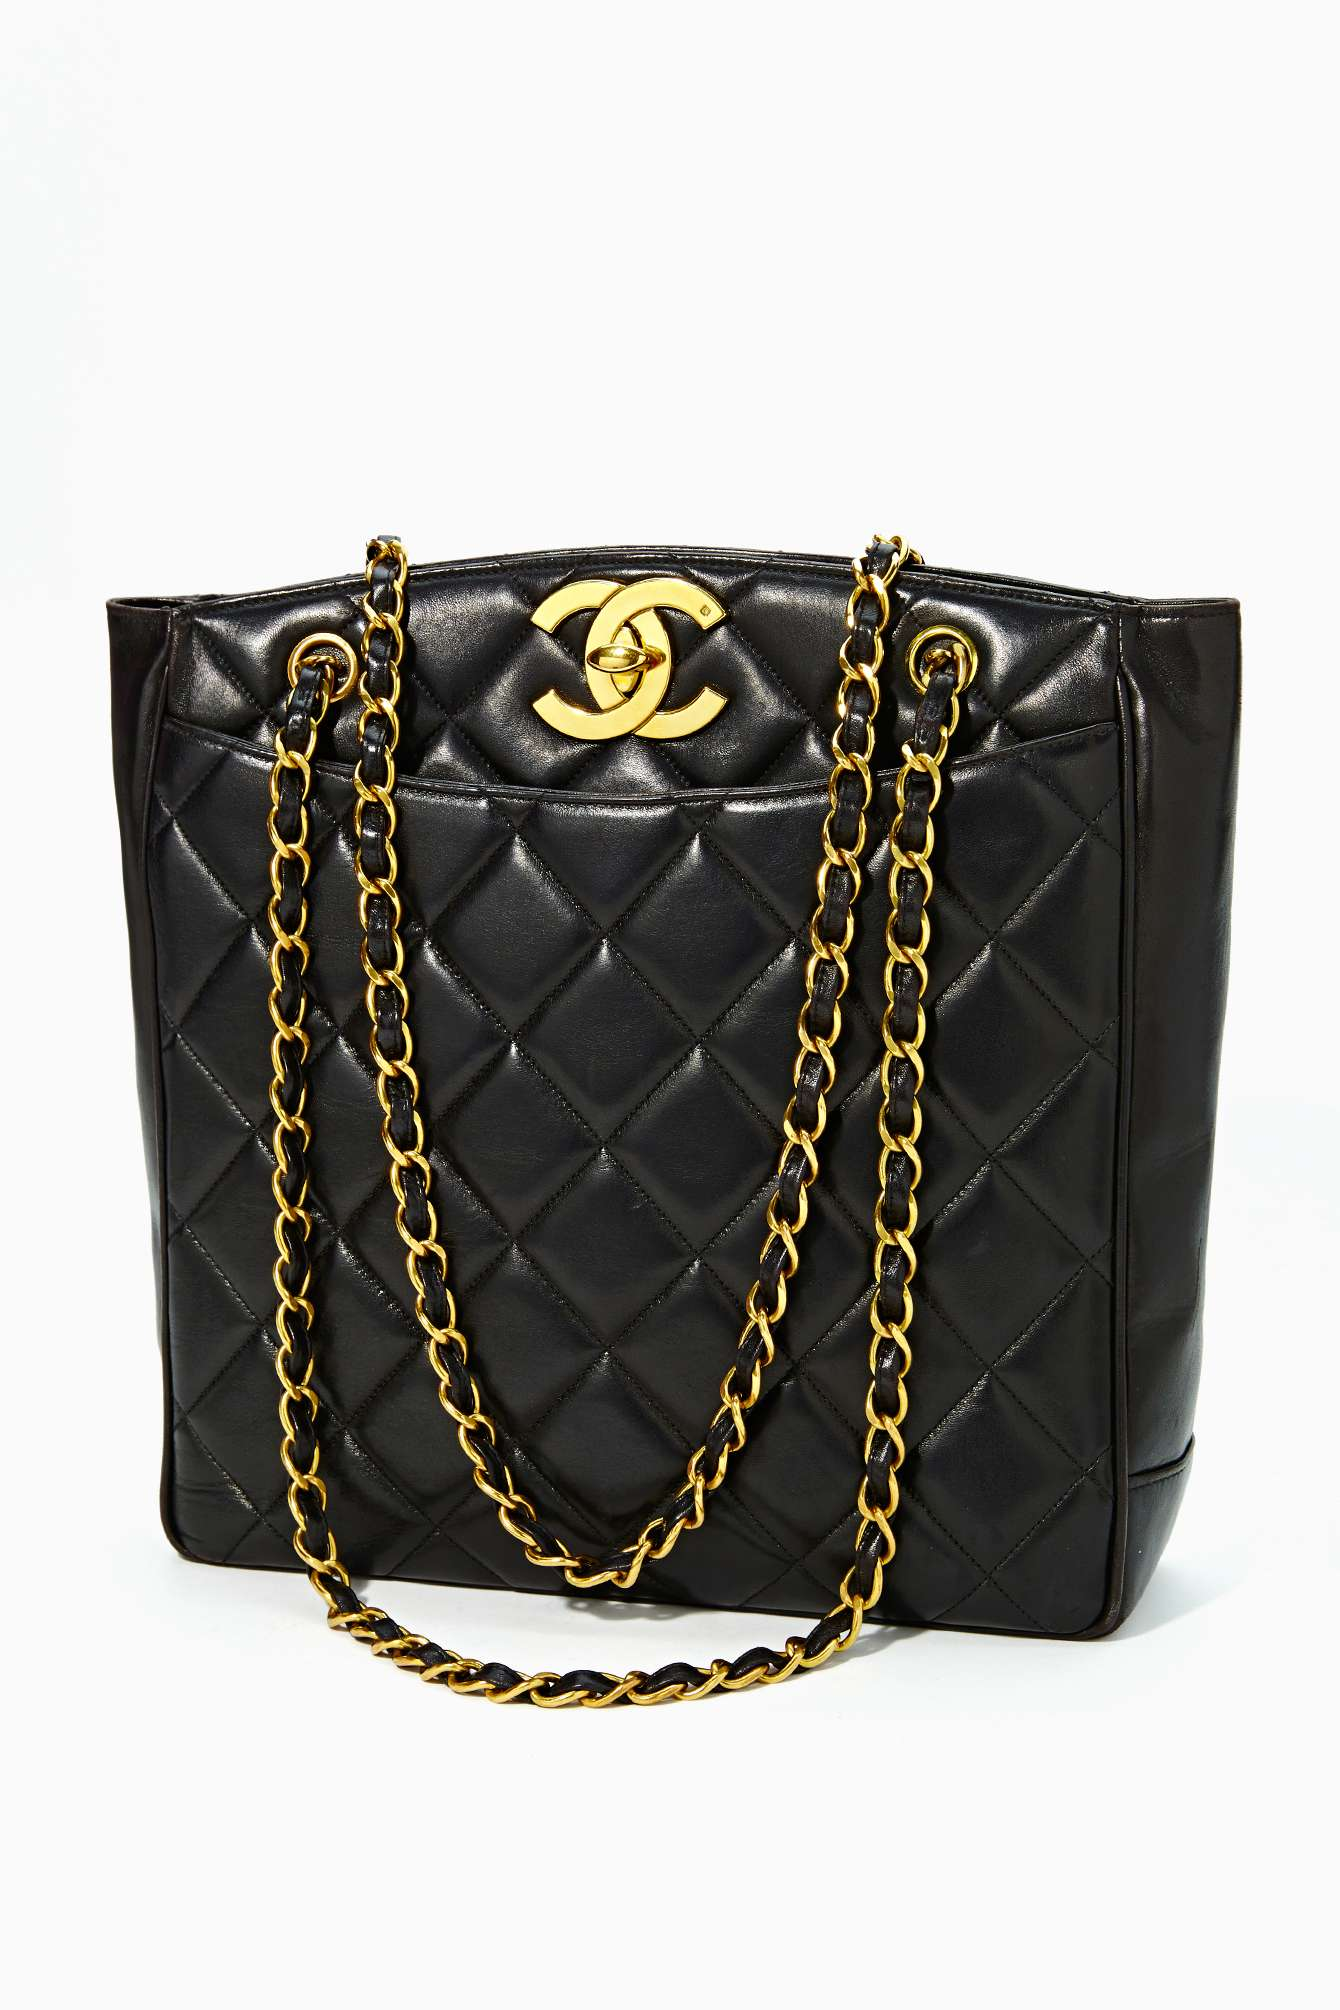 Lyst - Nasty Gal Vintage Quilted Chanel Black Leather Tote Sold Out ... d9dbca3d6f